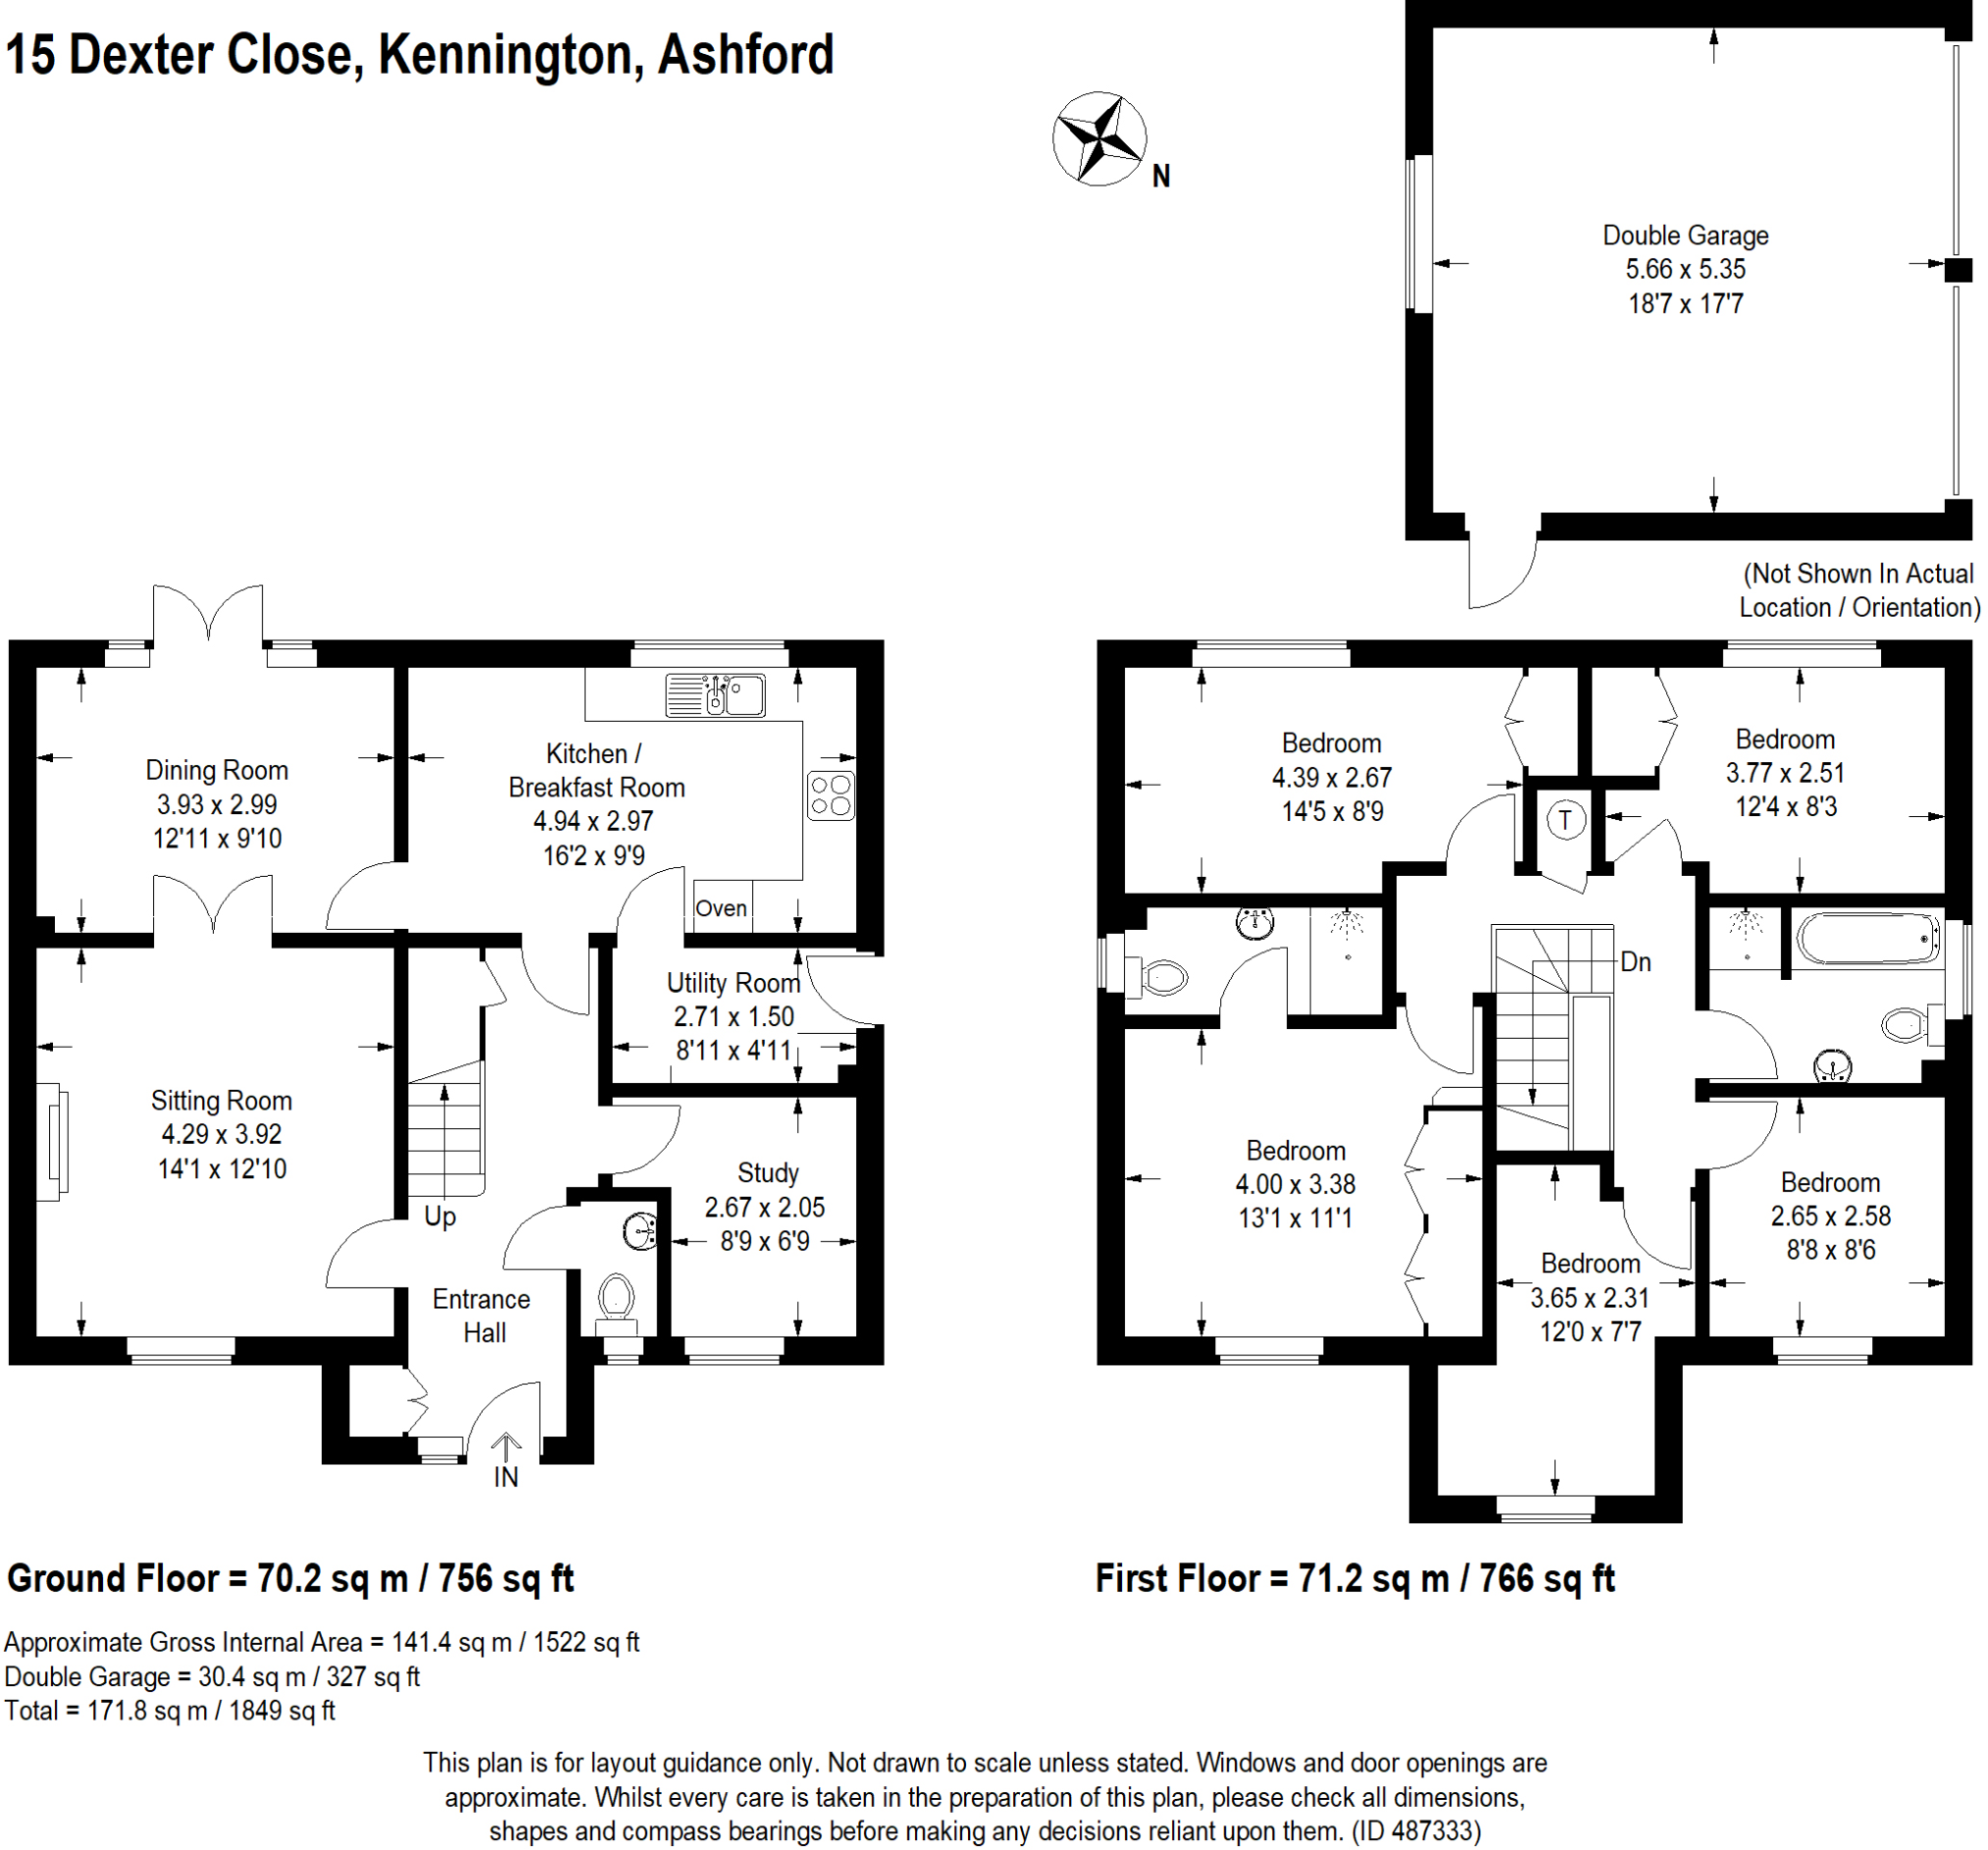 5 Bedroom Detached House For Sale In Kennington Tn25 Diagram 1 Black Is Check 2 Double